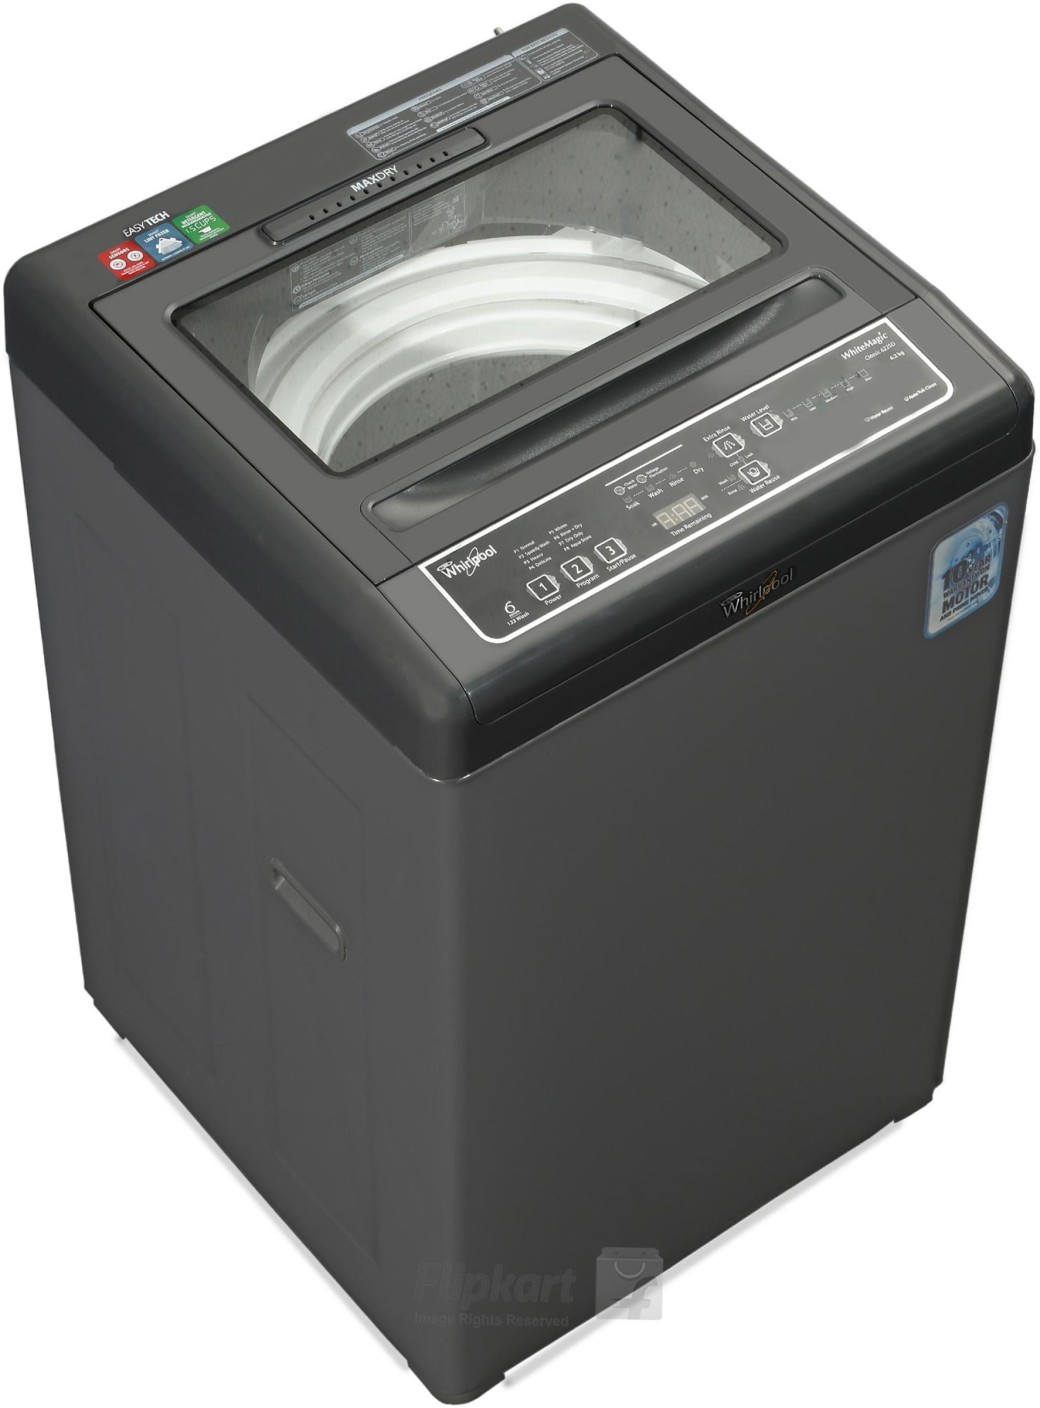 Whirlpool 6 2 Kg Fully Automatic Top Load Washing Machine